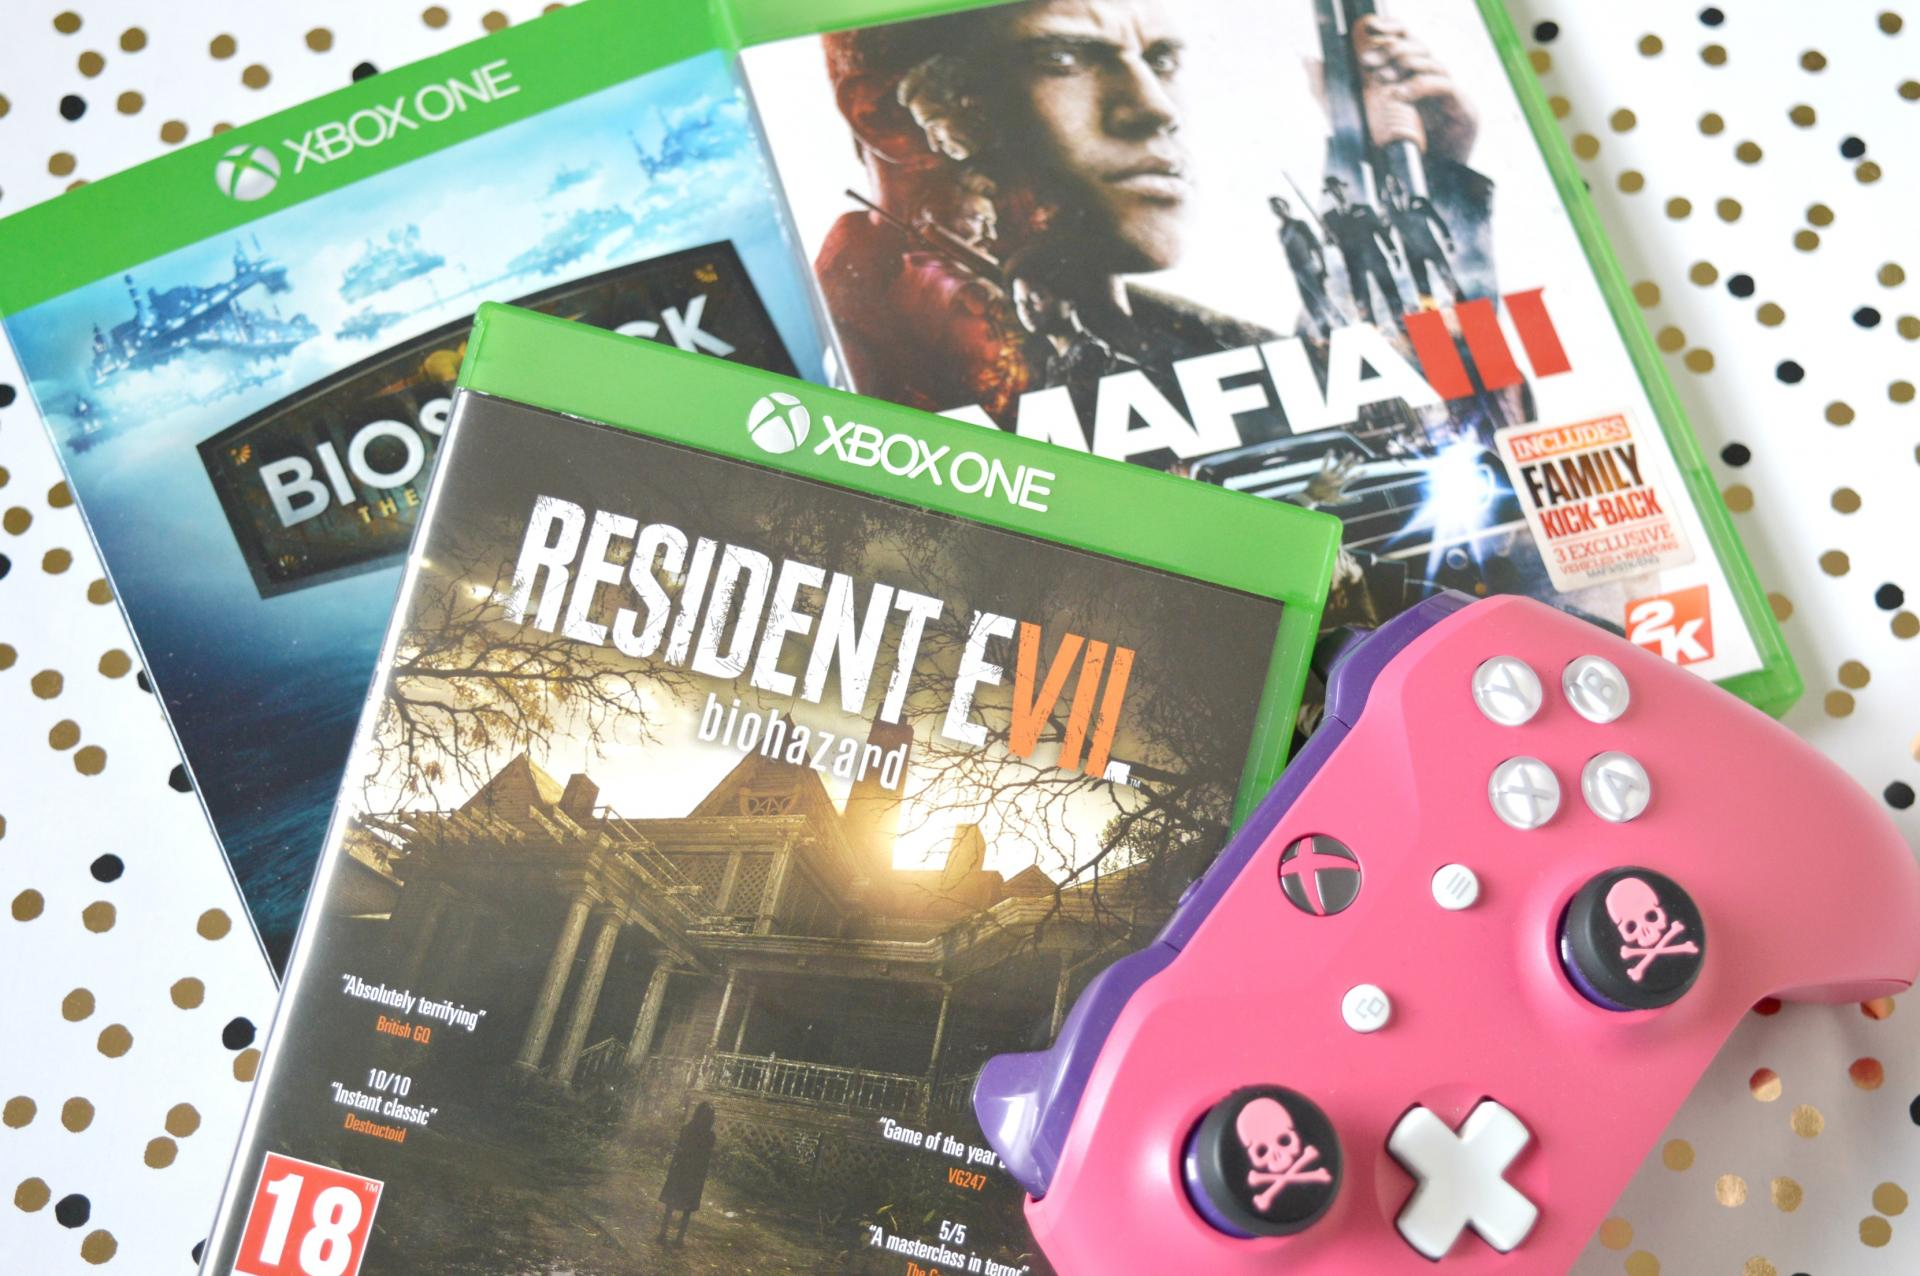 3 Impressive Xbox One Games I've Been Obsessed With - Mafia 3, Resident Evil 7 Biohazard and Bioshock The Collection